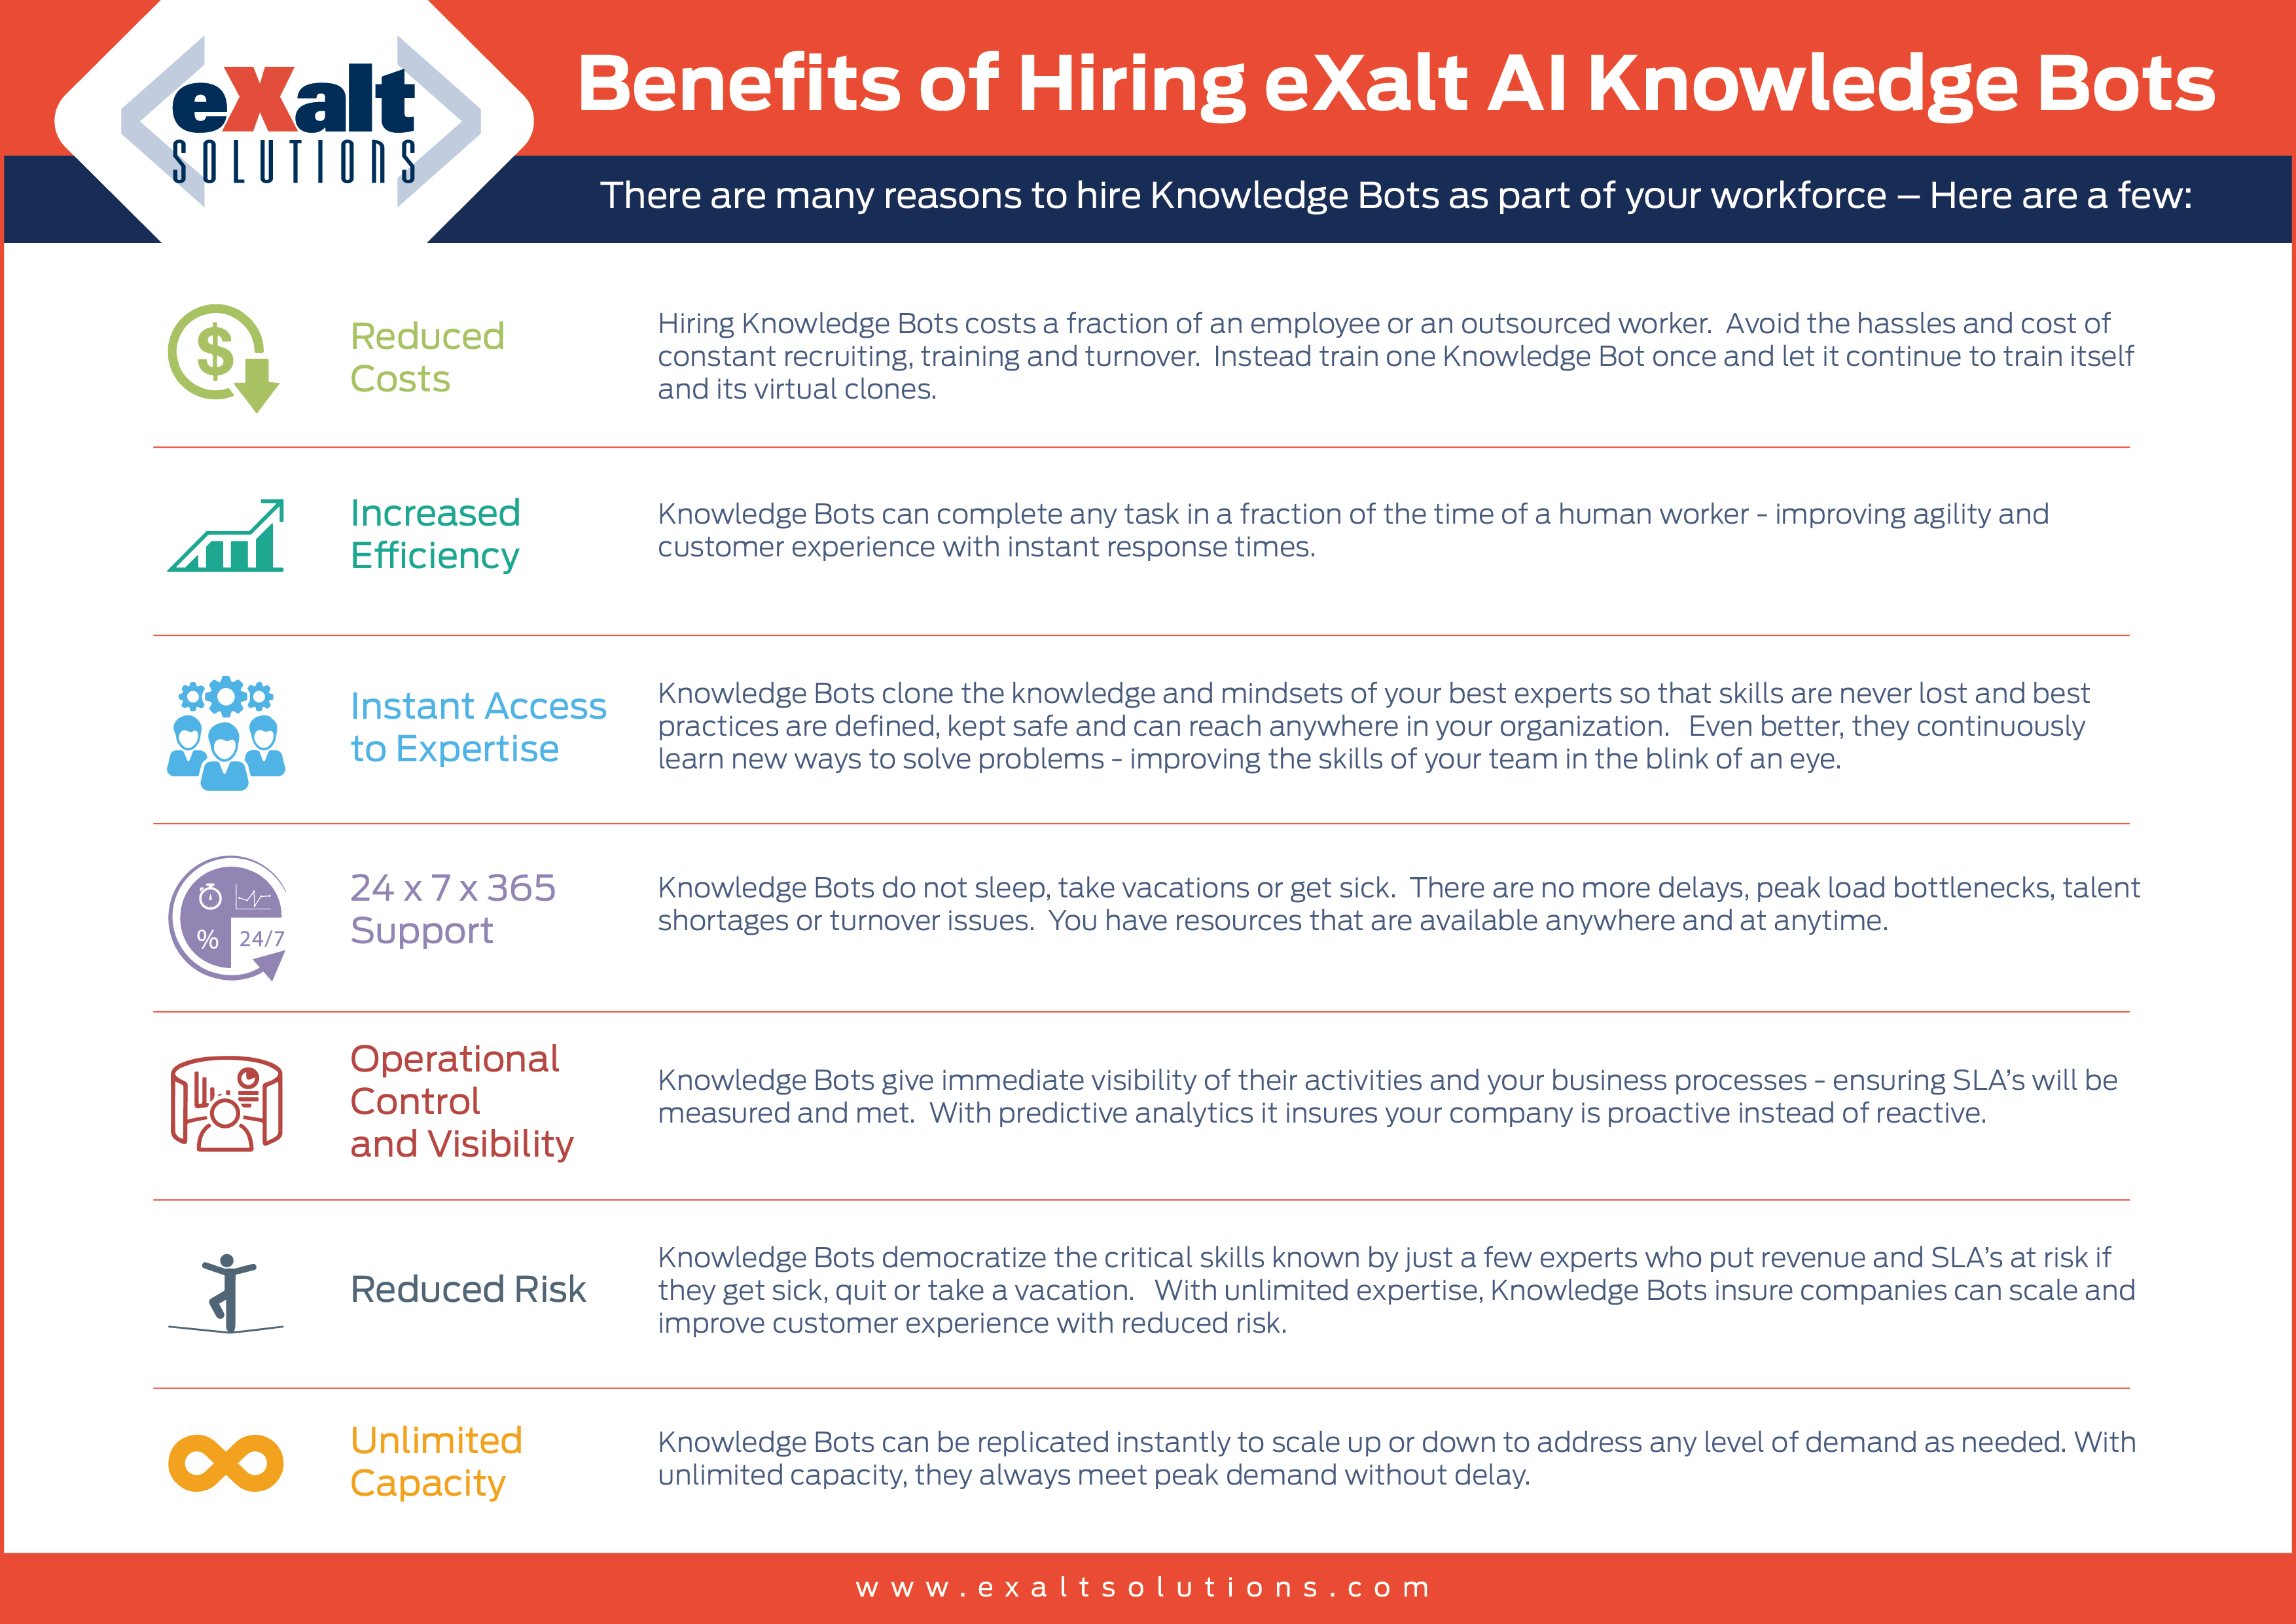 Benefits of Hiring eXalt AI Knowledge Bots